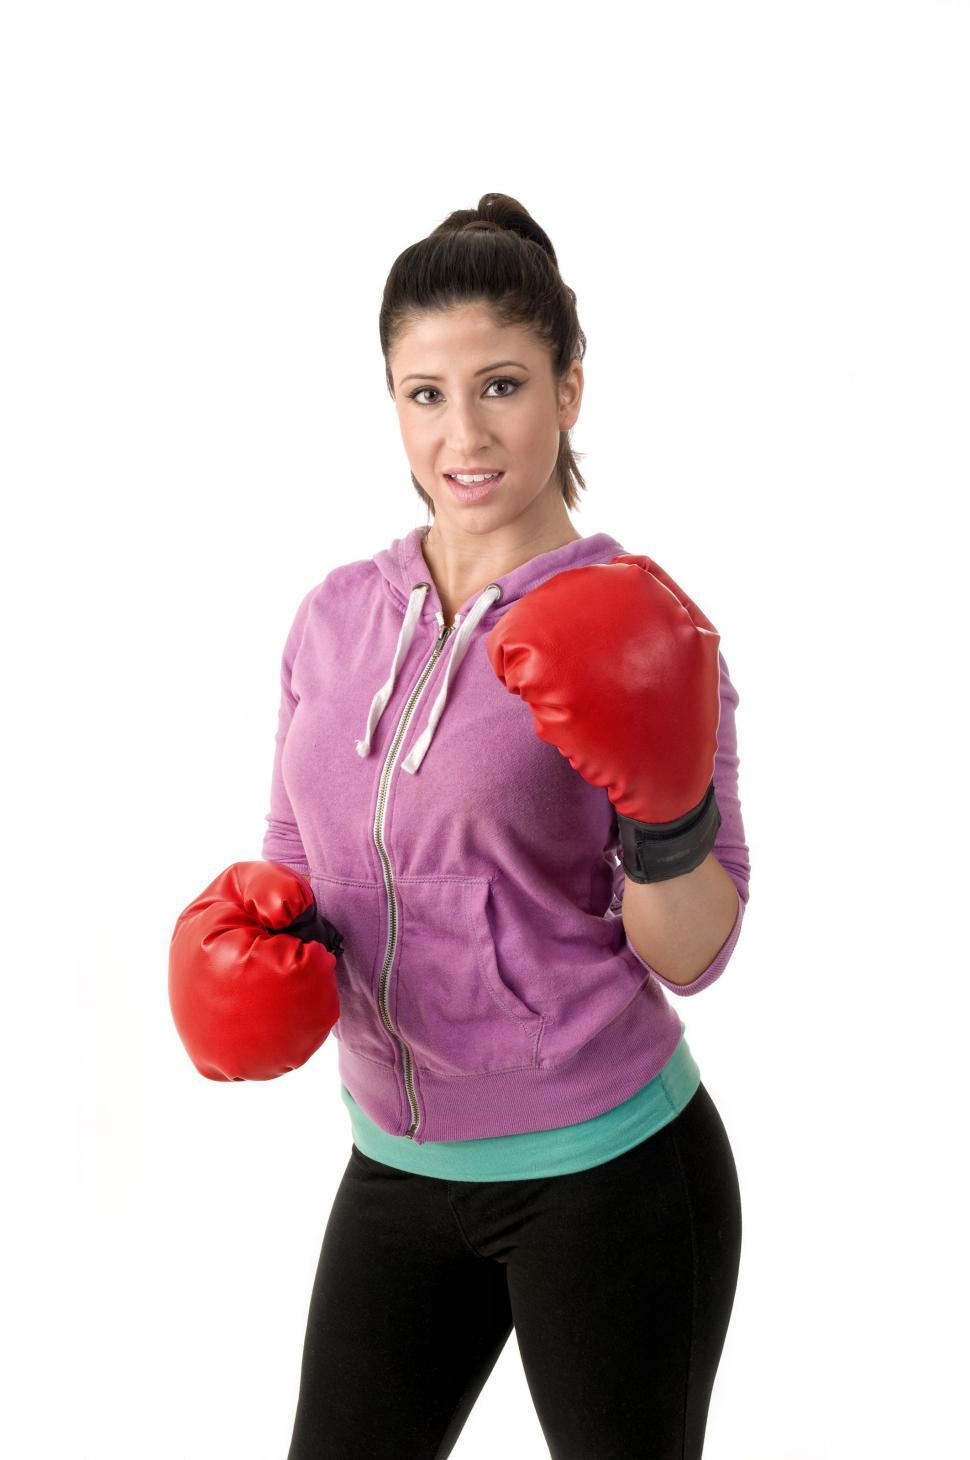 Download Free Stock Photo of Workout woman with boxing gloves